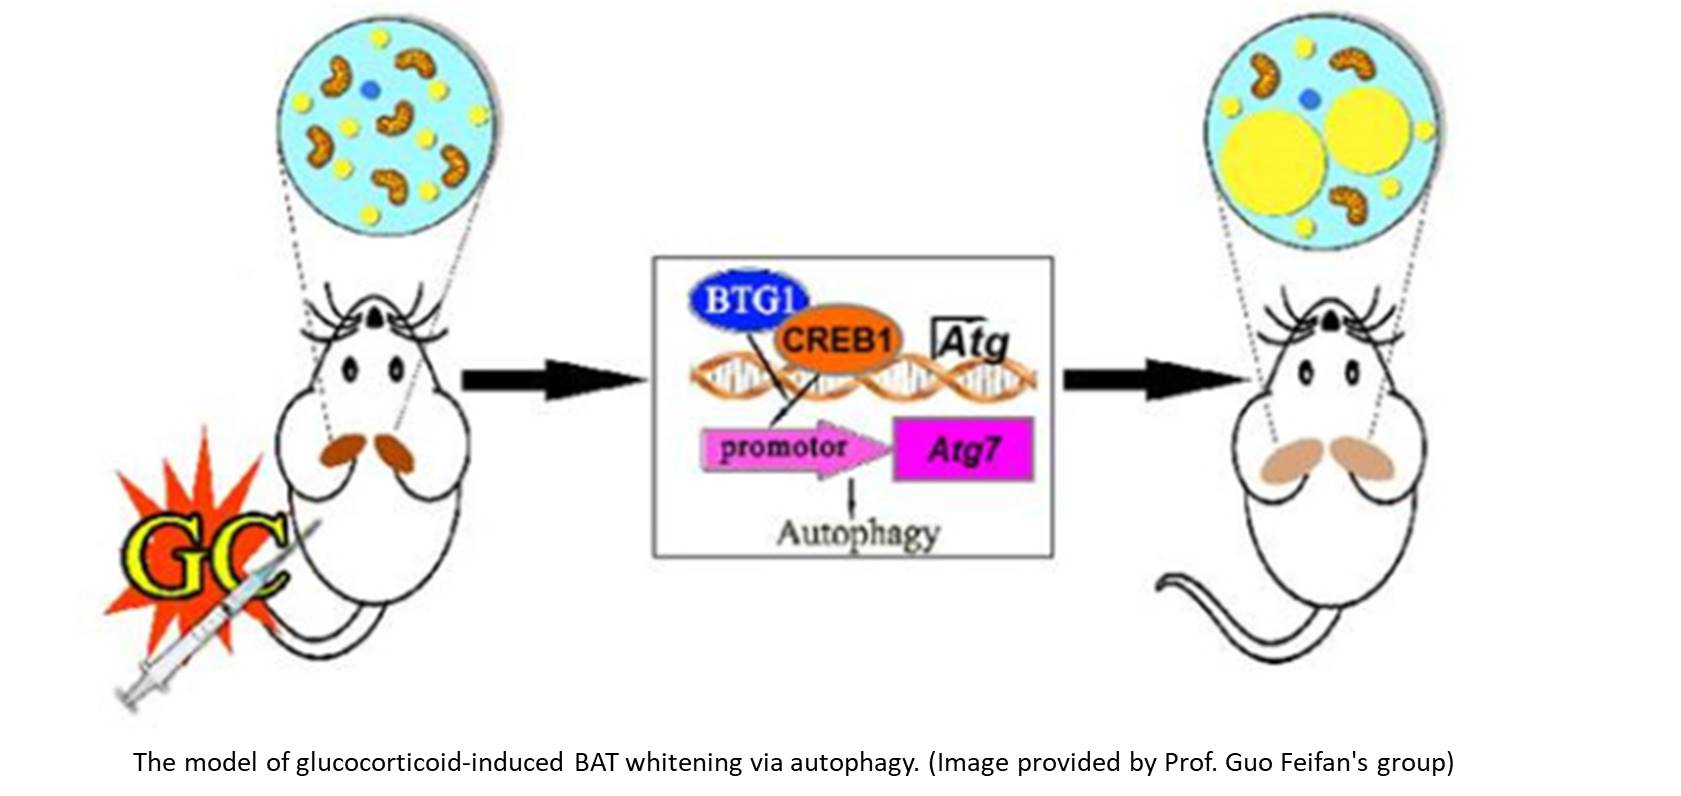 Role of Autophagy in Glucocorticoid-Induced BAT Whitening